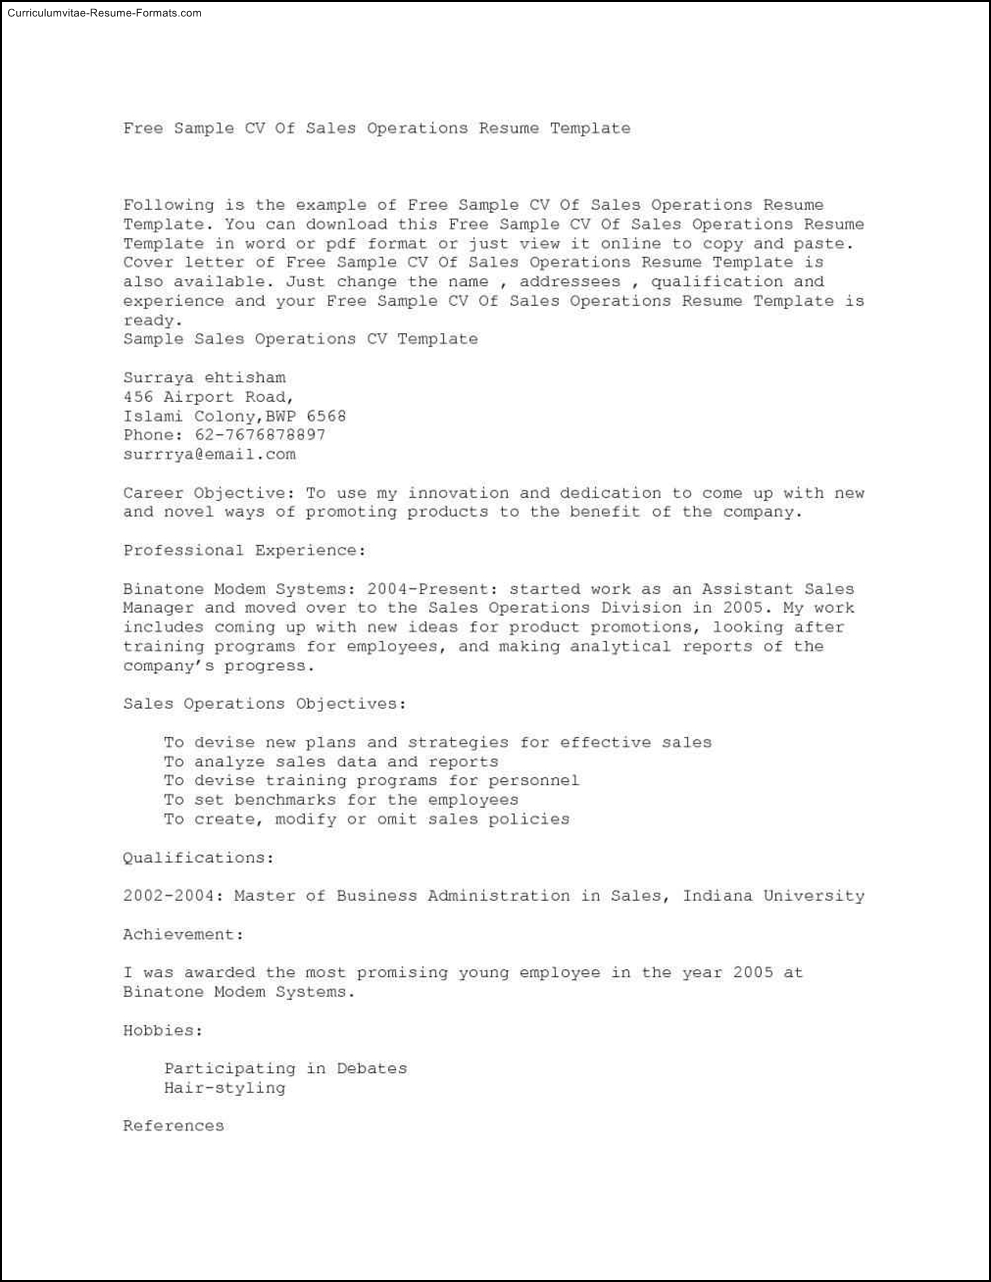 Copy-Paste-Resume-Templates Curriculumvitae Format For Secretary on european date format, professional curriculum vitae format, reference letter format, calendar format, presentation format, bank account number format, schedule format, sample full block letter format, job letter format, title page format, research format, personal profile format, letter of recommendation format, business plan format, book format, writing sample format, example of outline format, proposal format, note format,